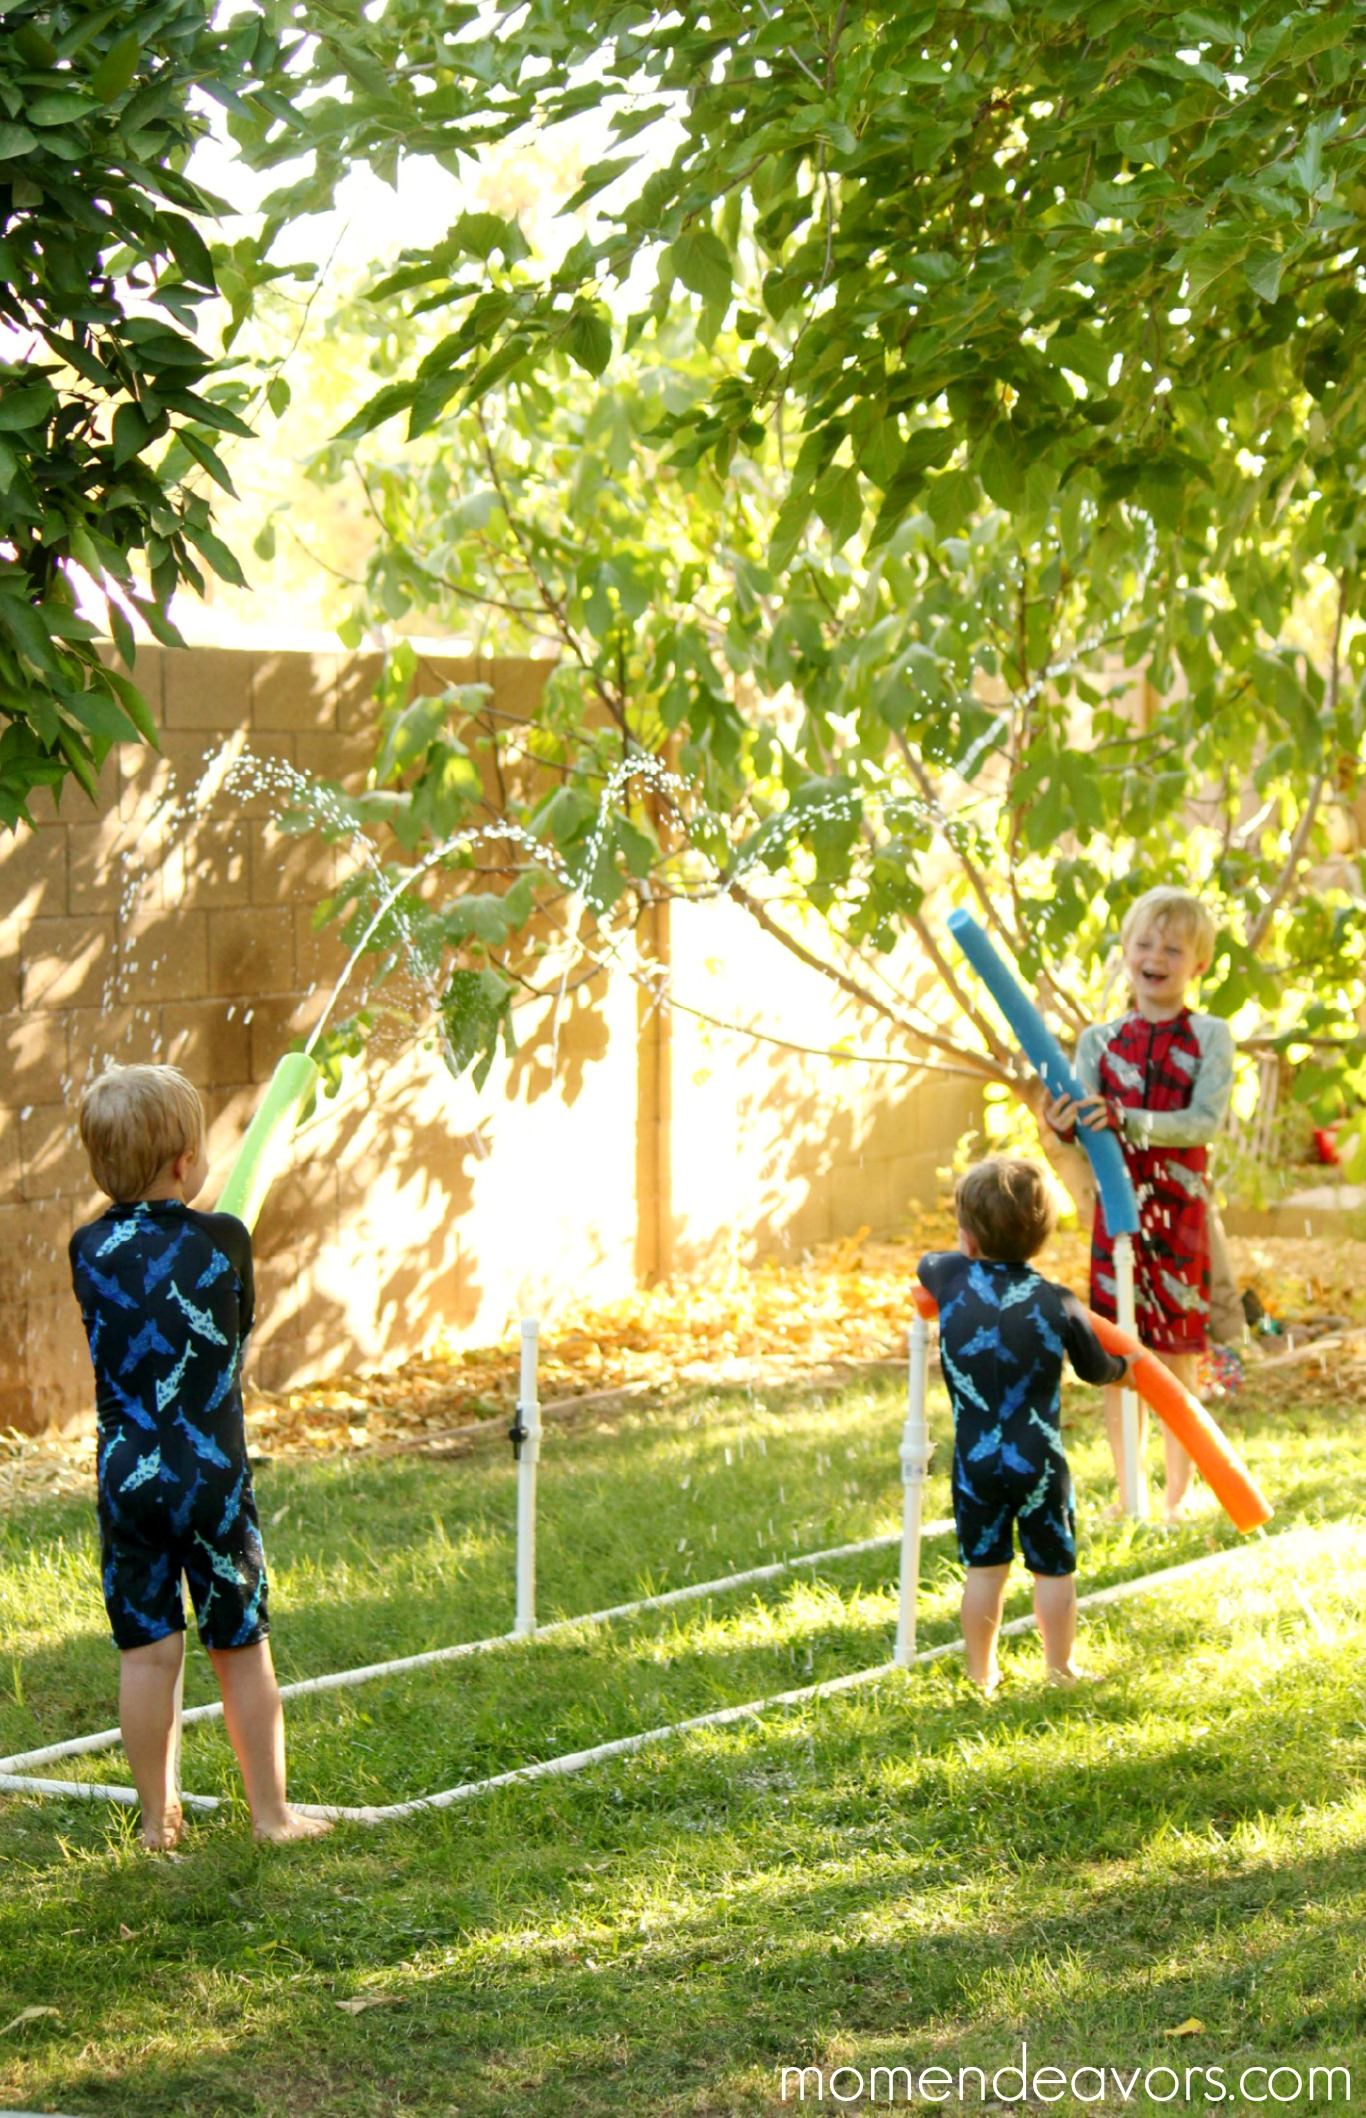 DIY Water Blaster Kid Sprinkler